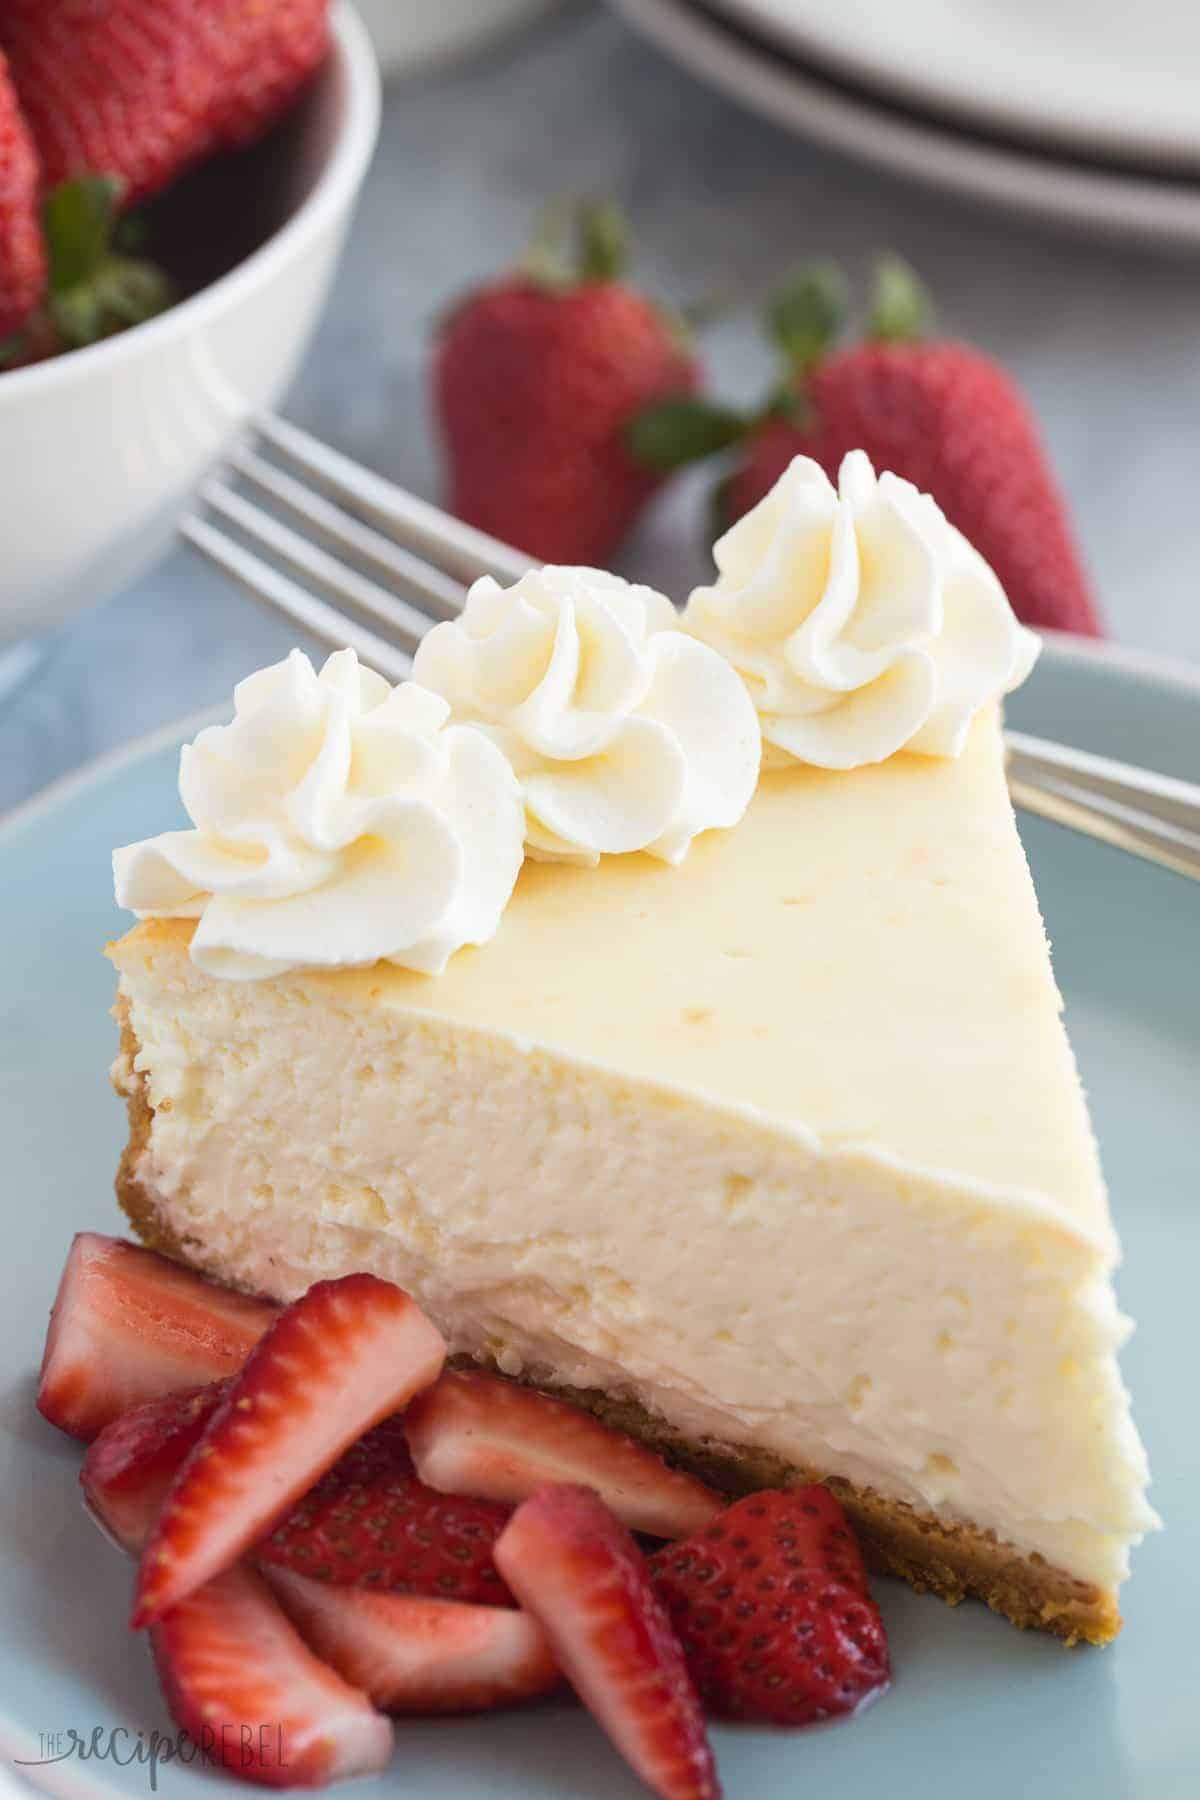 How To Make Baked Cheese Cake Creamy